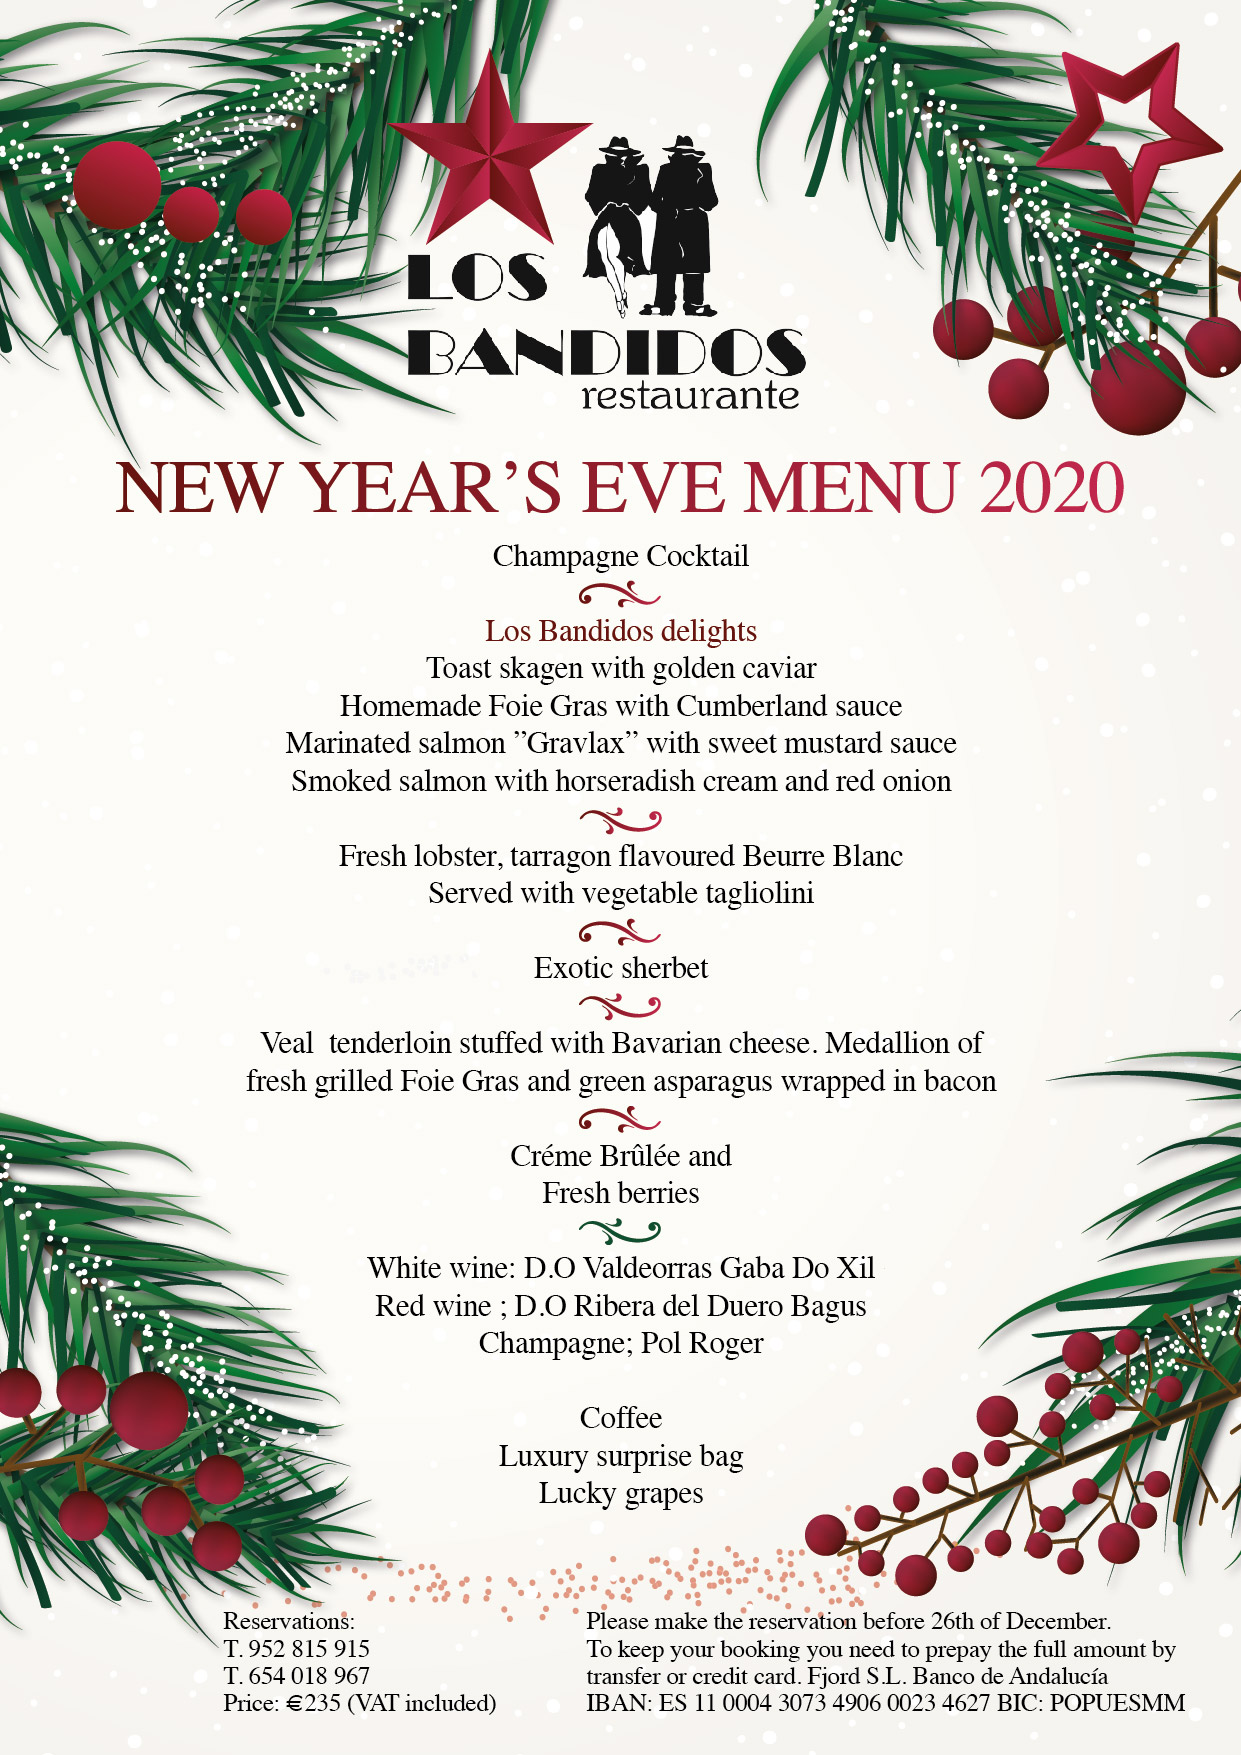 New Year's Eve Menu at Los Bandidos Restaurant